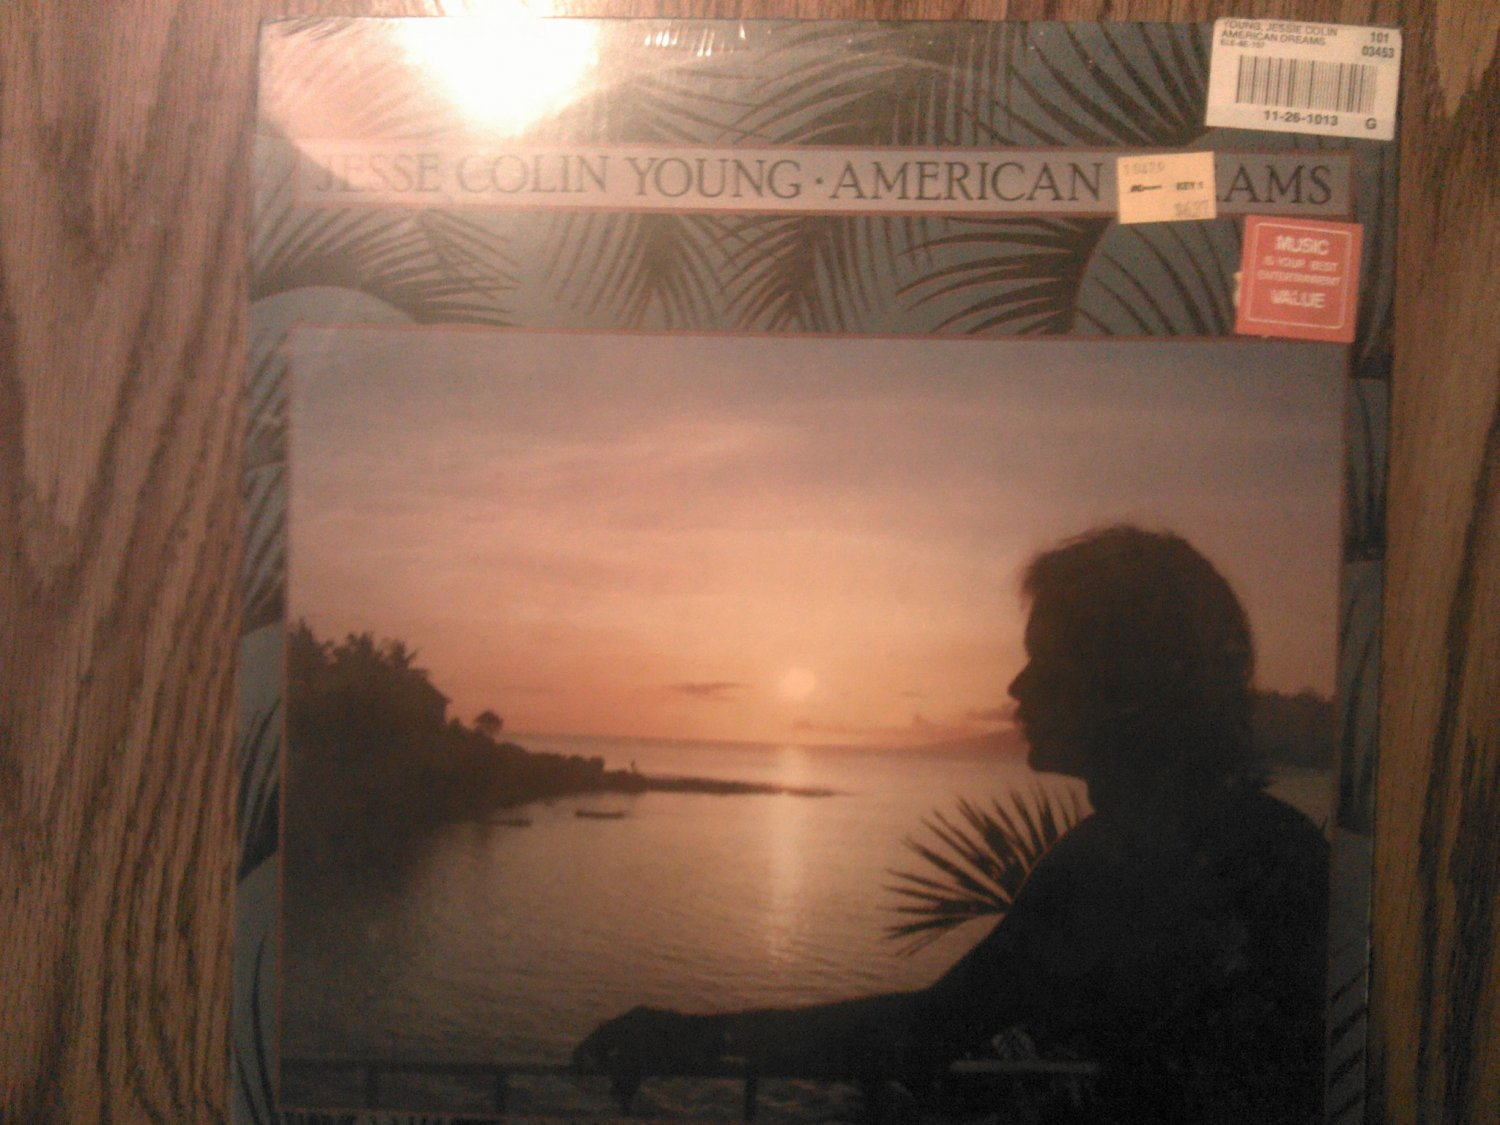 LP JESSE COLIN YOUNG American Dreams vintage record SEALED